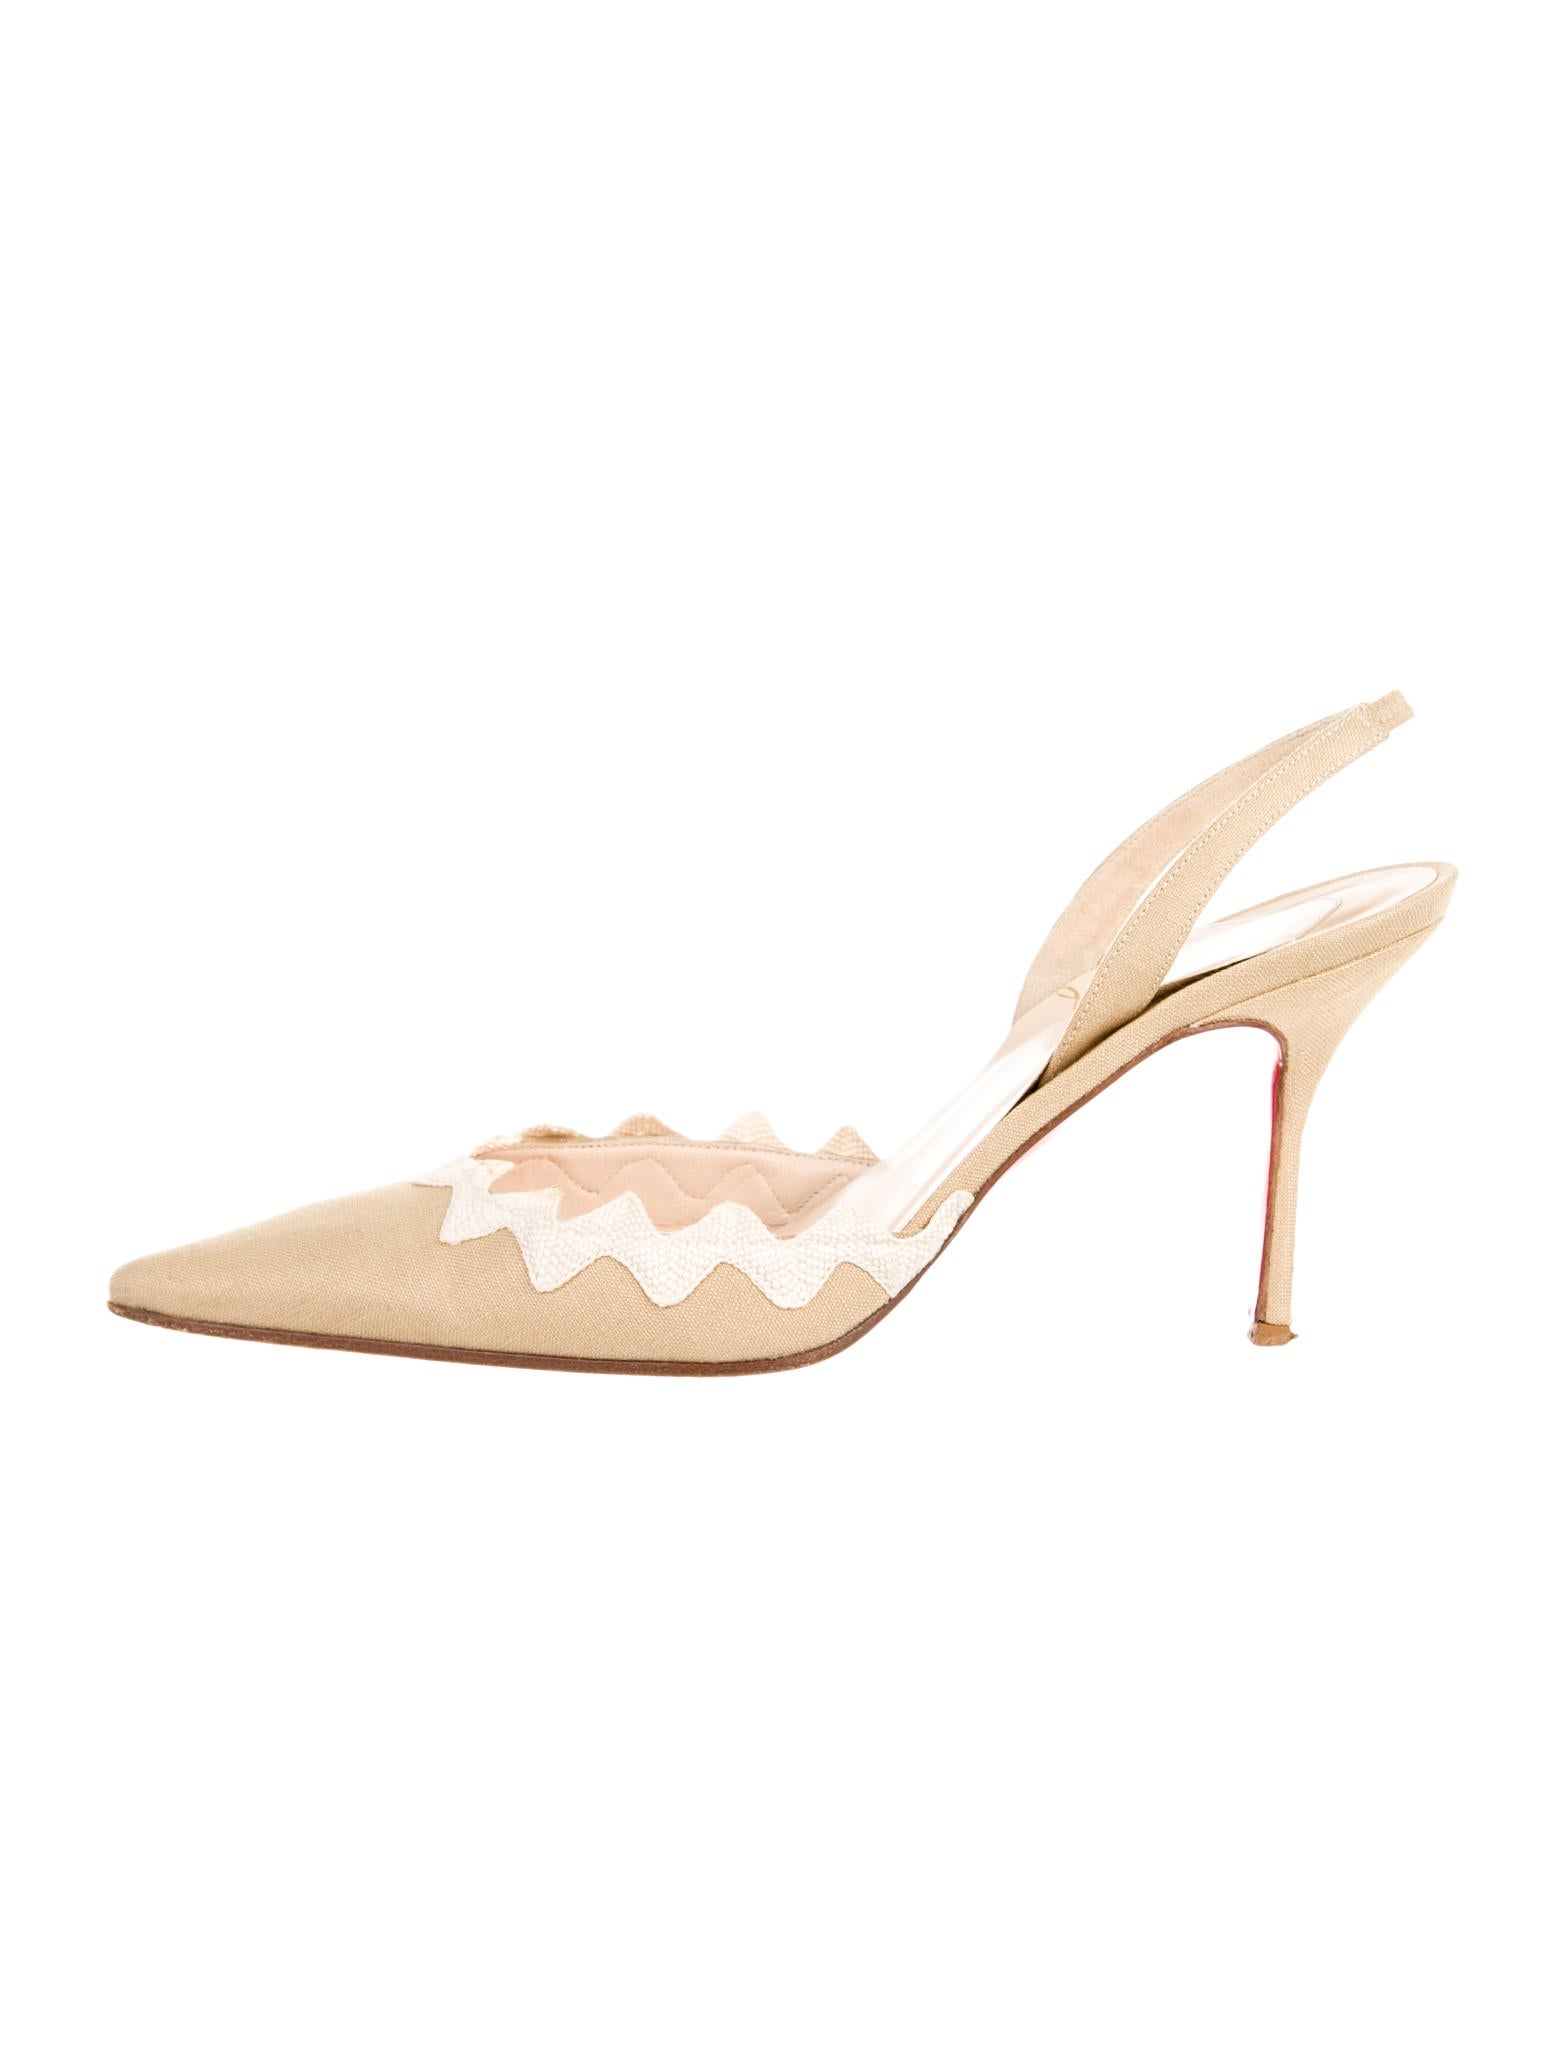 replica flats - christian louboutin canvas pointed-toe pumps, fake christian louboutin